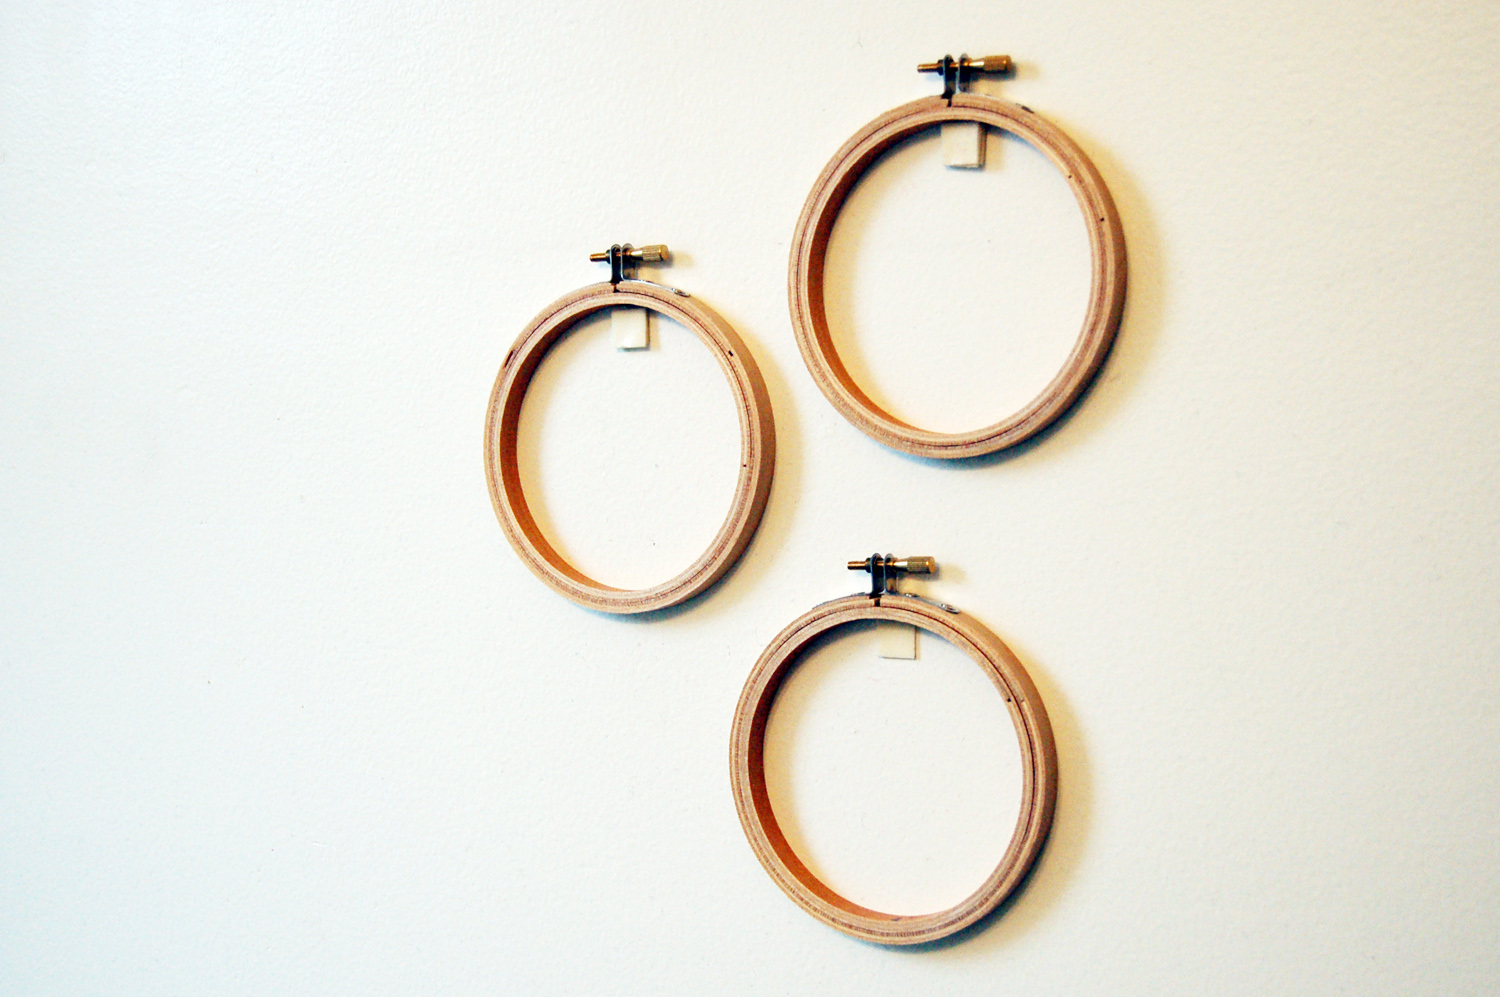 Hanging hoops without wall damage themerriweather council blog how to hand embroidery hoops without wall damage the meriweather council blog ccuart Choice Image